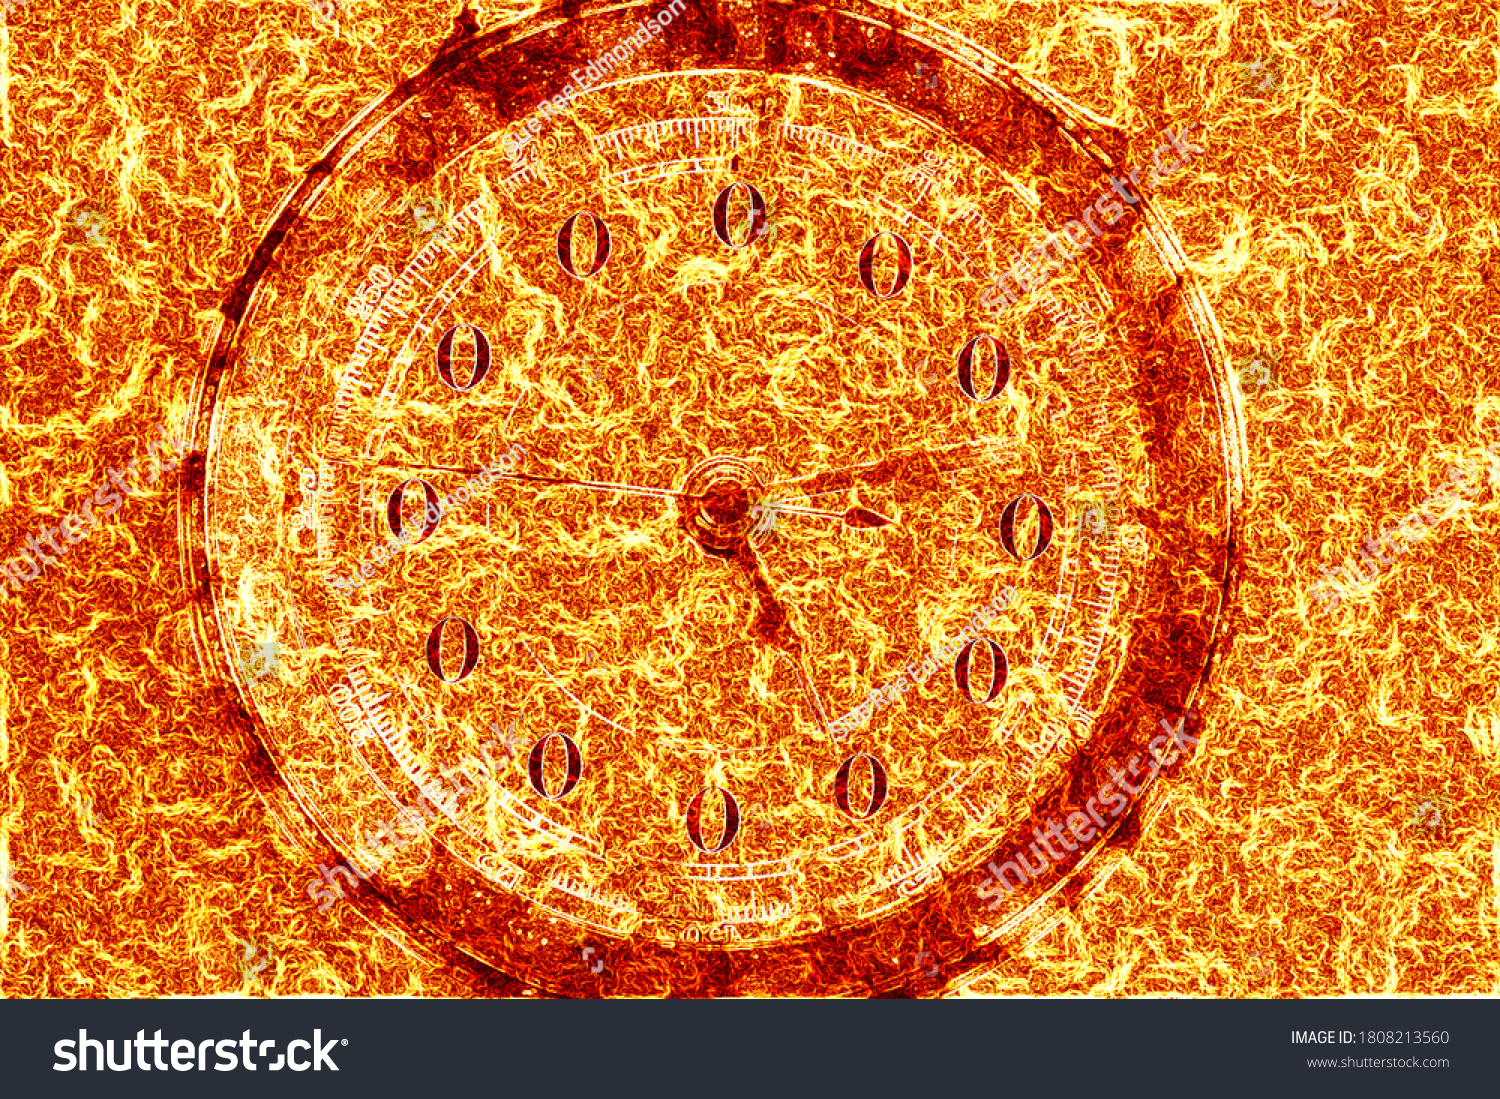 stock-photo-flames-engulfing-a-clock-fac